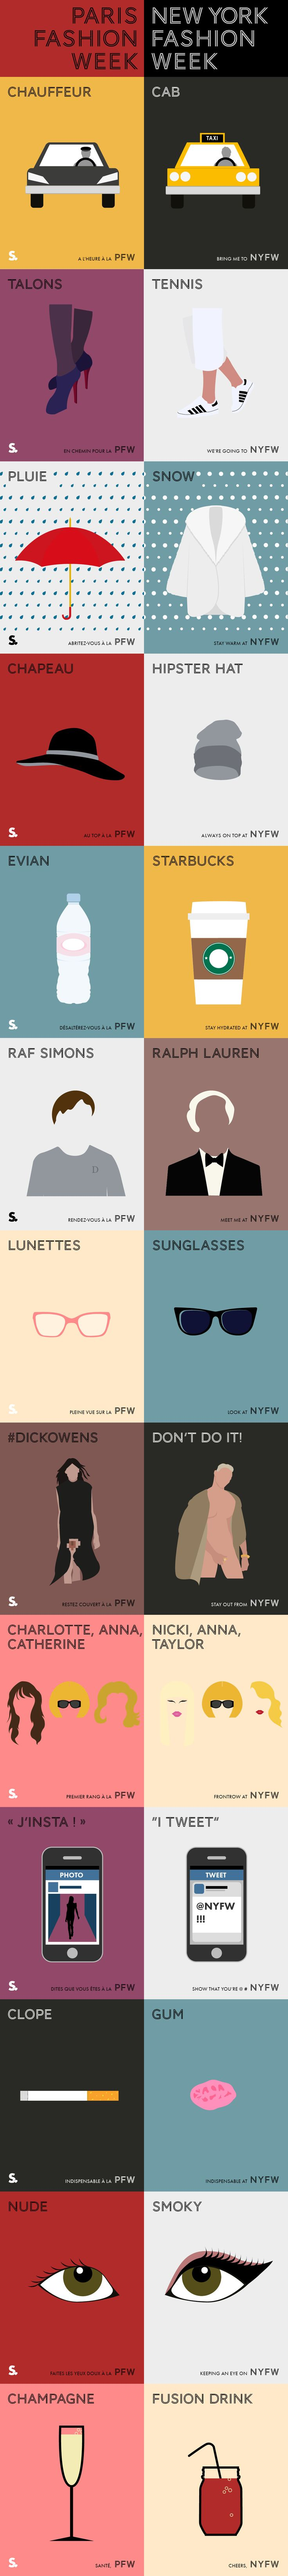 Paris vs New York Fashion Week #infographic #illustration